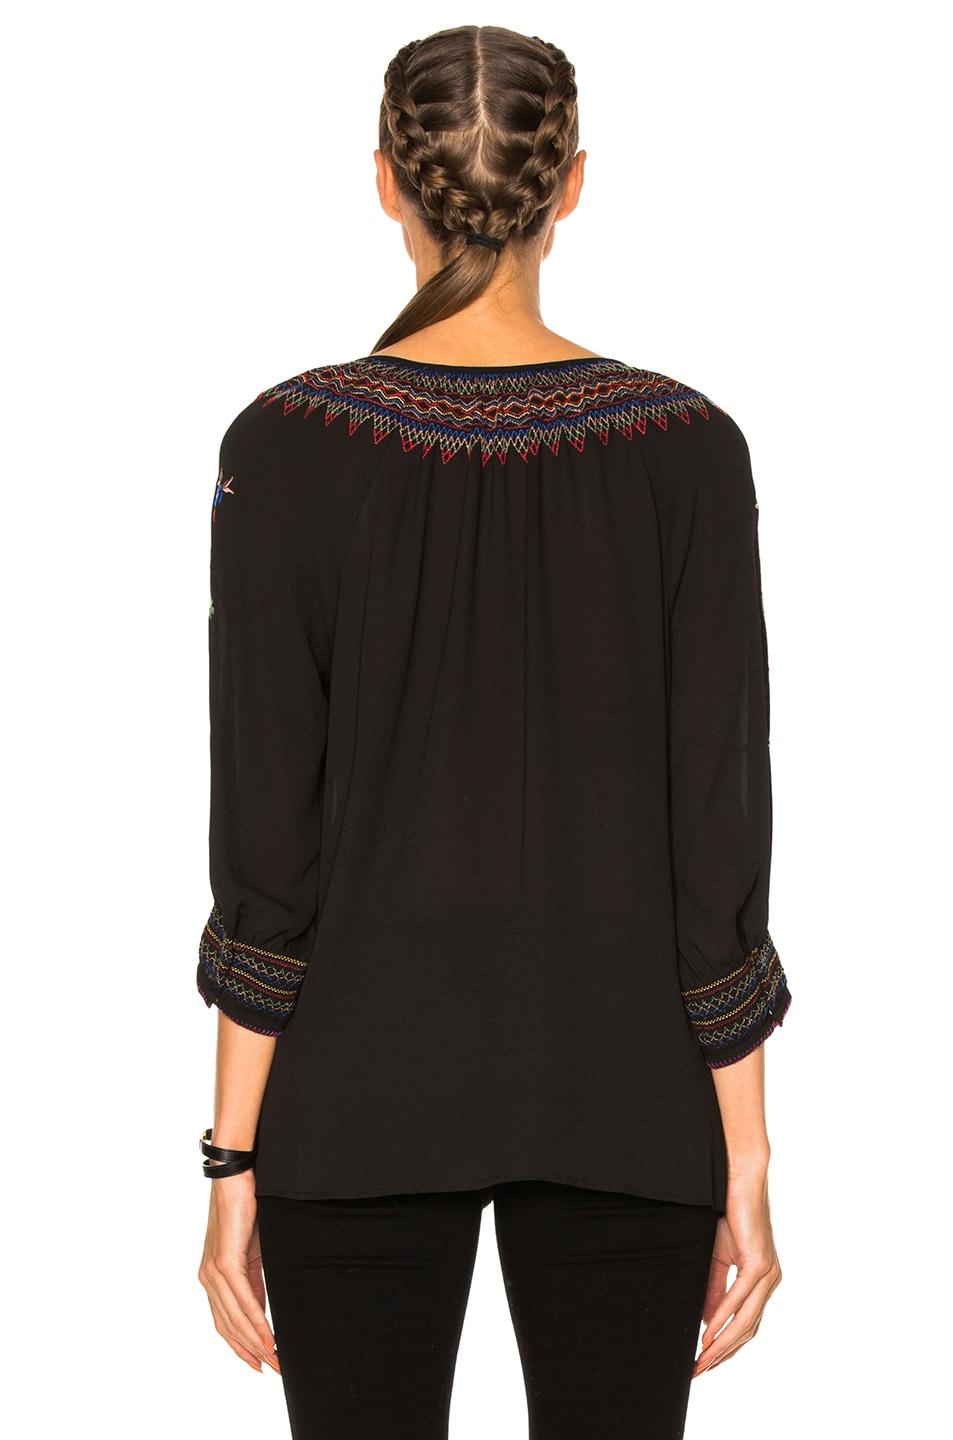 Image 4 of The Great Promenade Top in Black